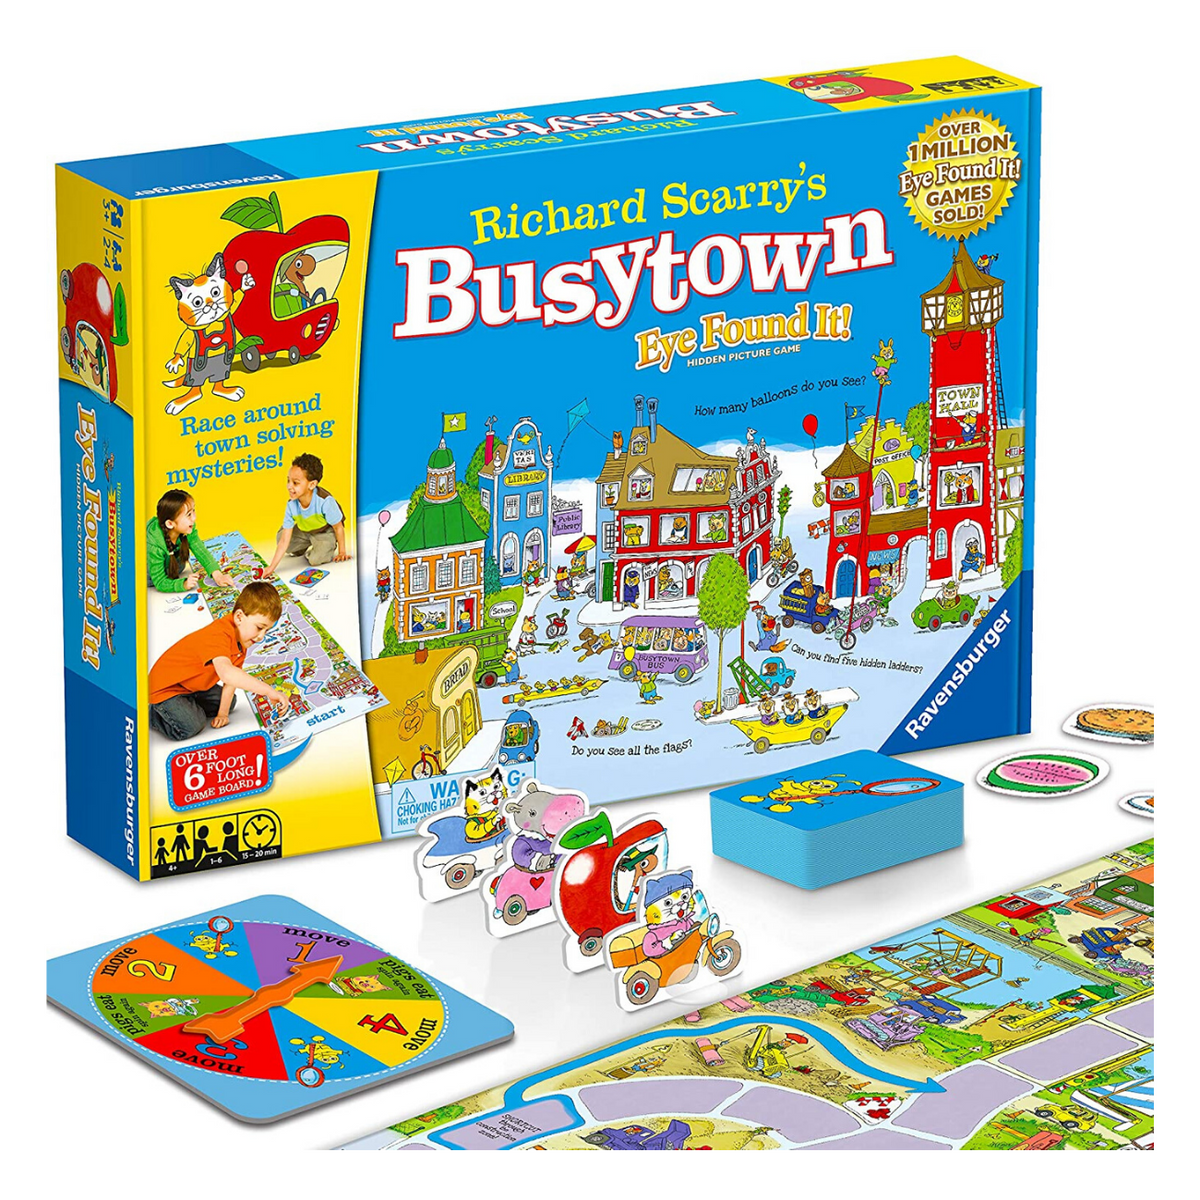 Richard Scarry's All the Colors of Busytown by Richard Scarry | 1200x1200